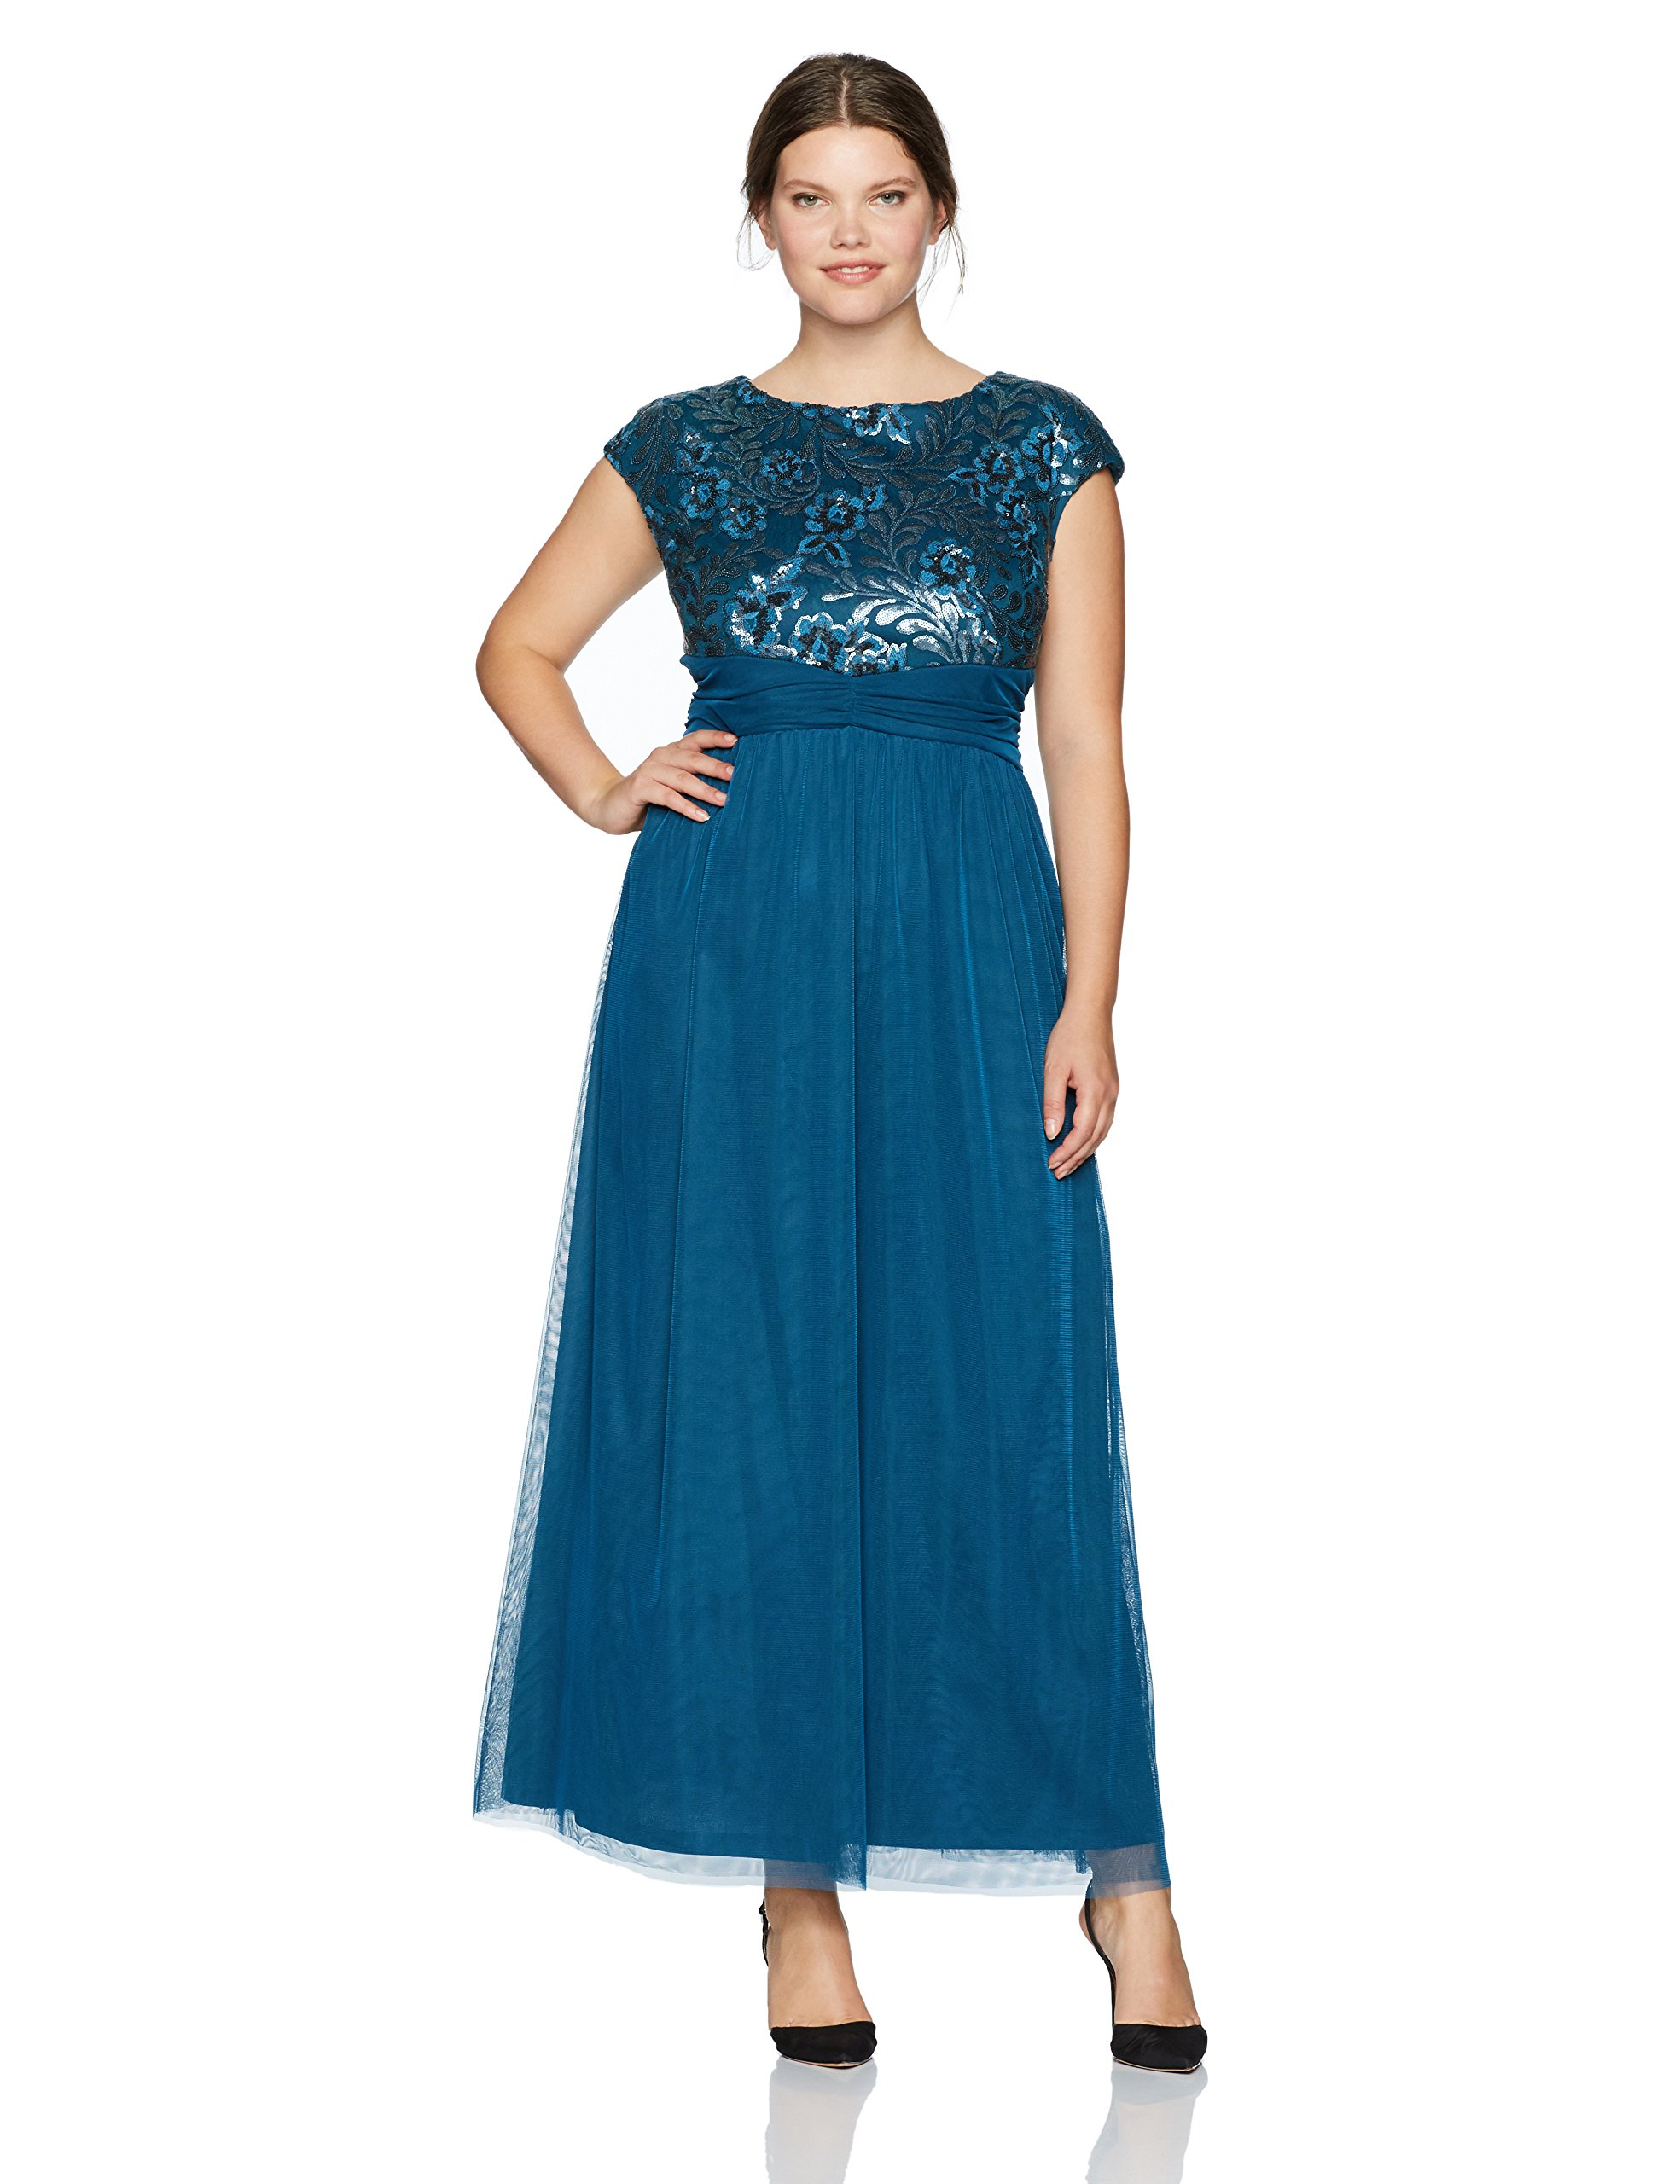 Le Bos Women's Plus Size Sequin Bodice Long Dress W/Tulle Skirt, Teal, 14W